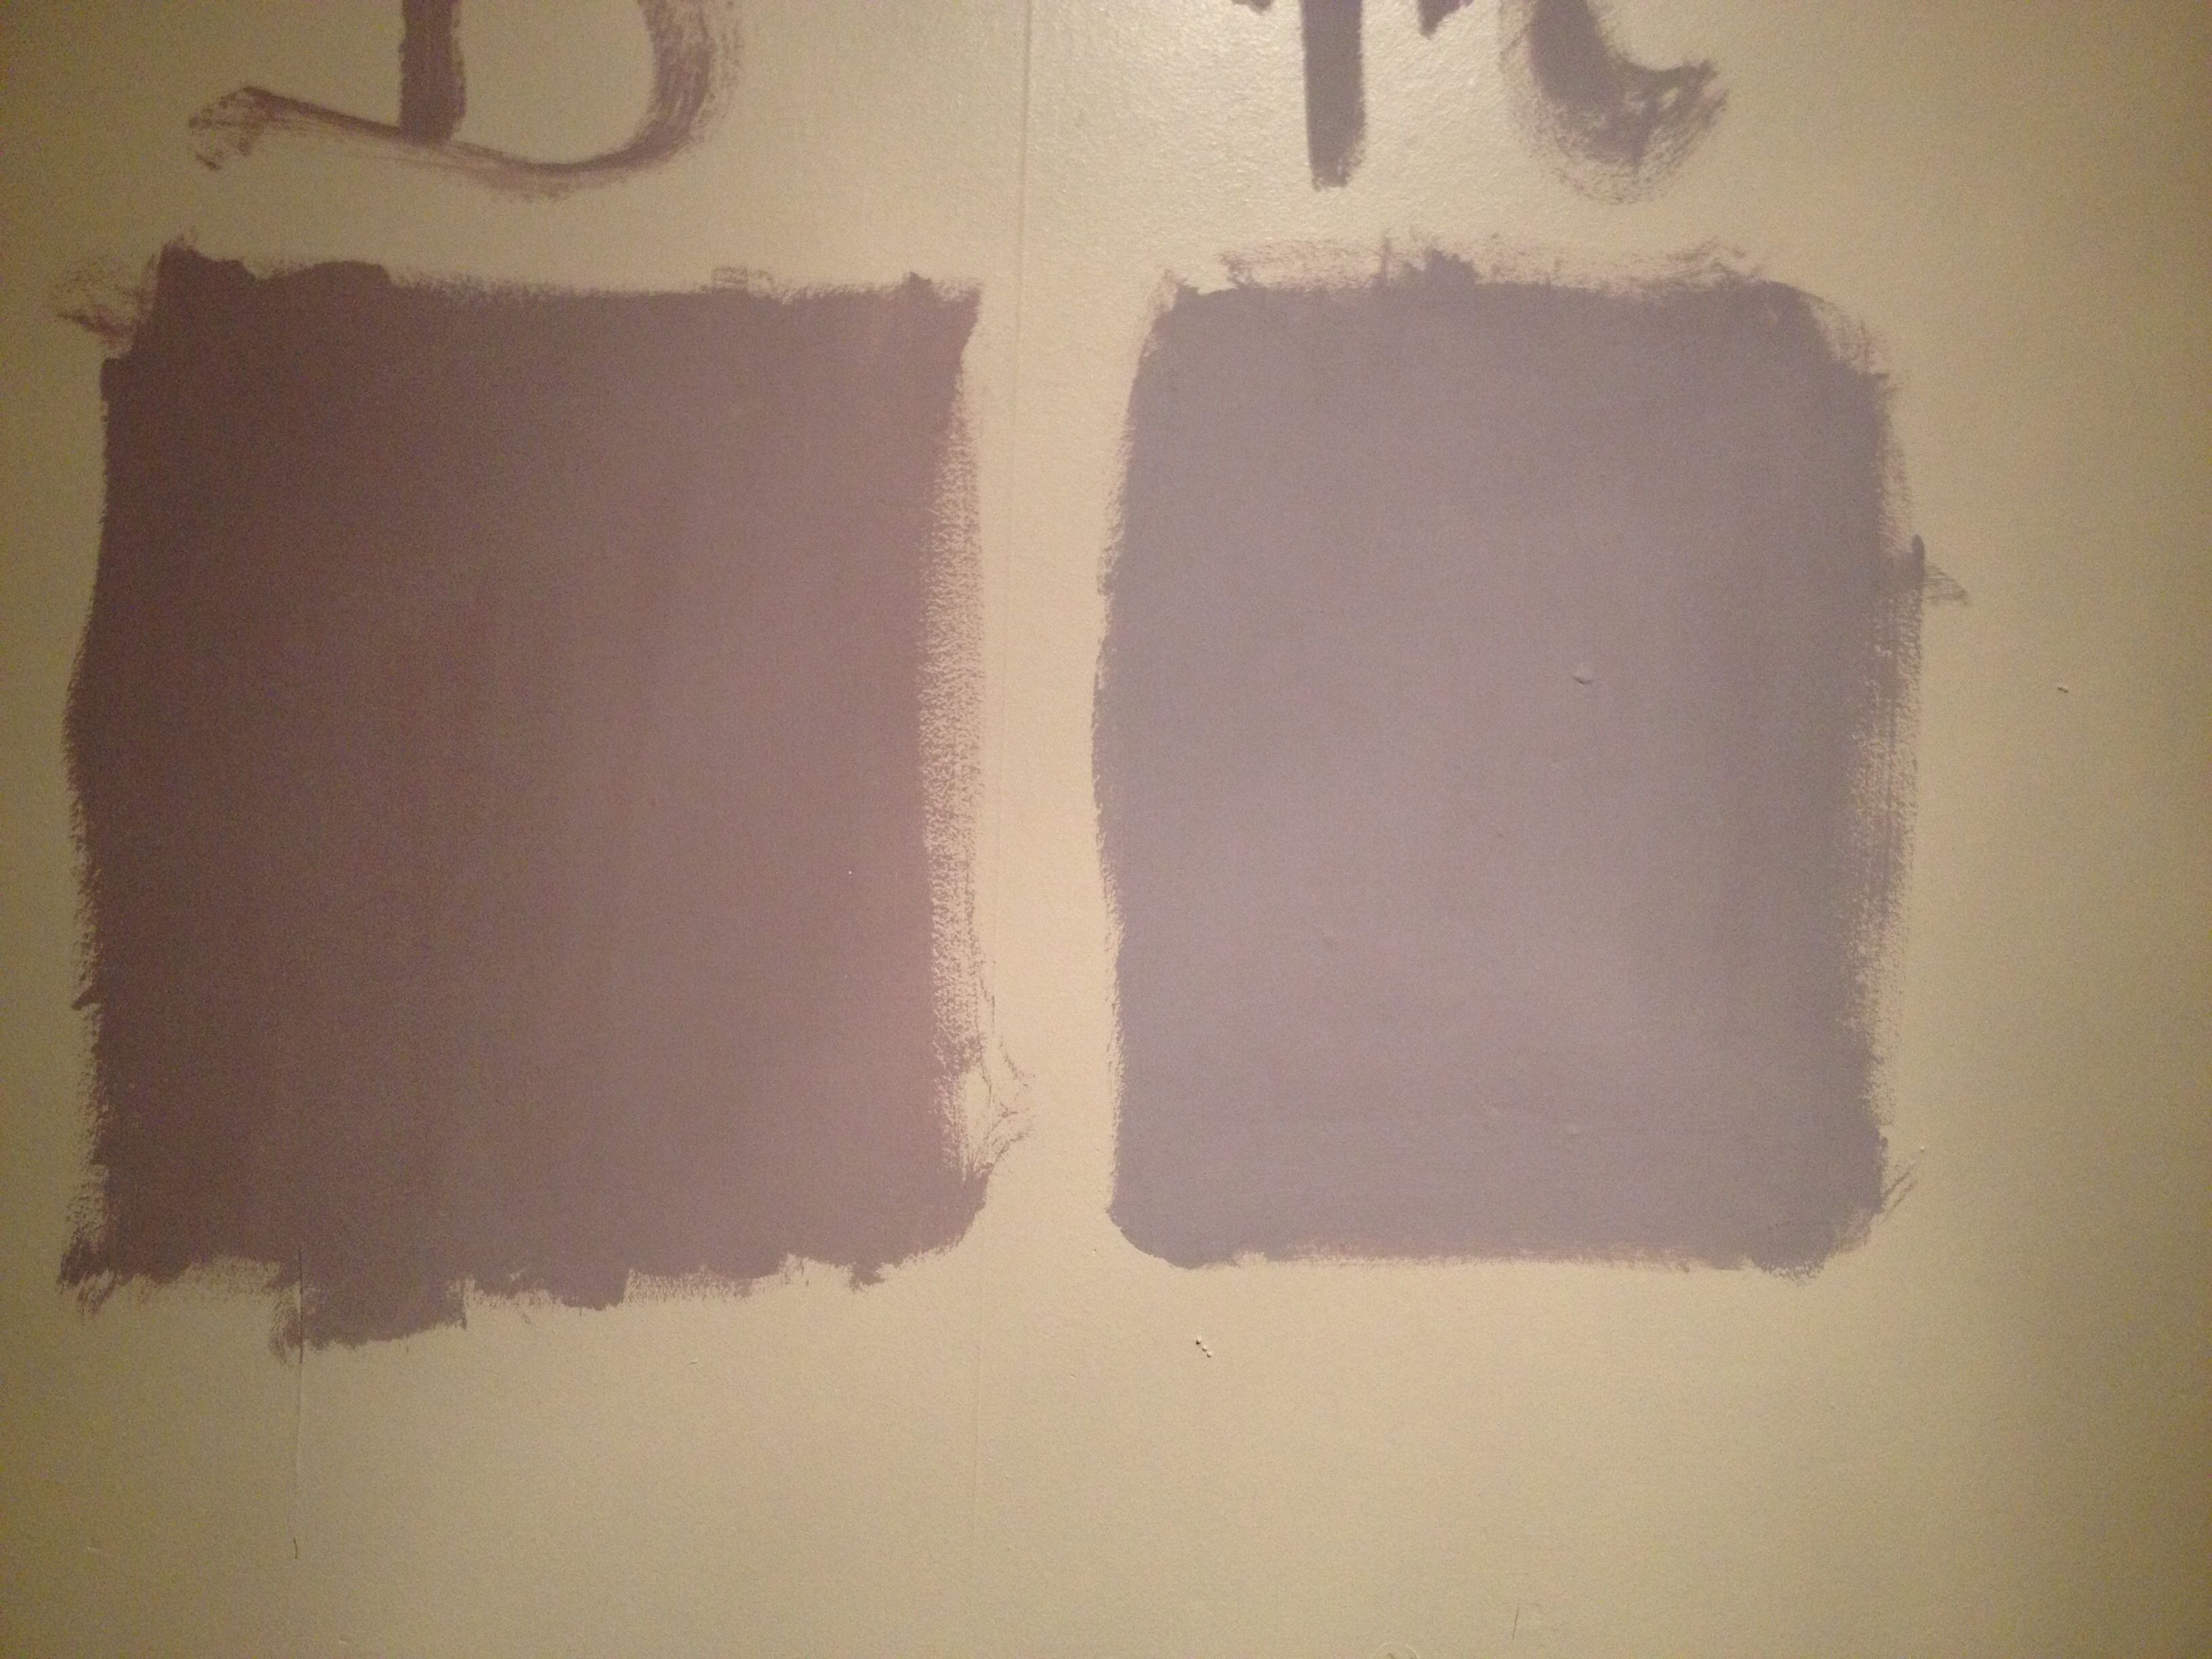 Dulux Moss Heather For Spare Room With Silver Furniture And Grey Carpet